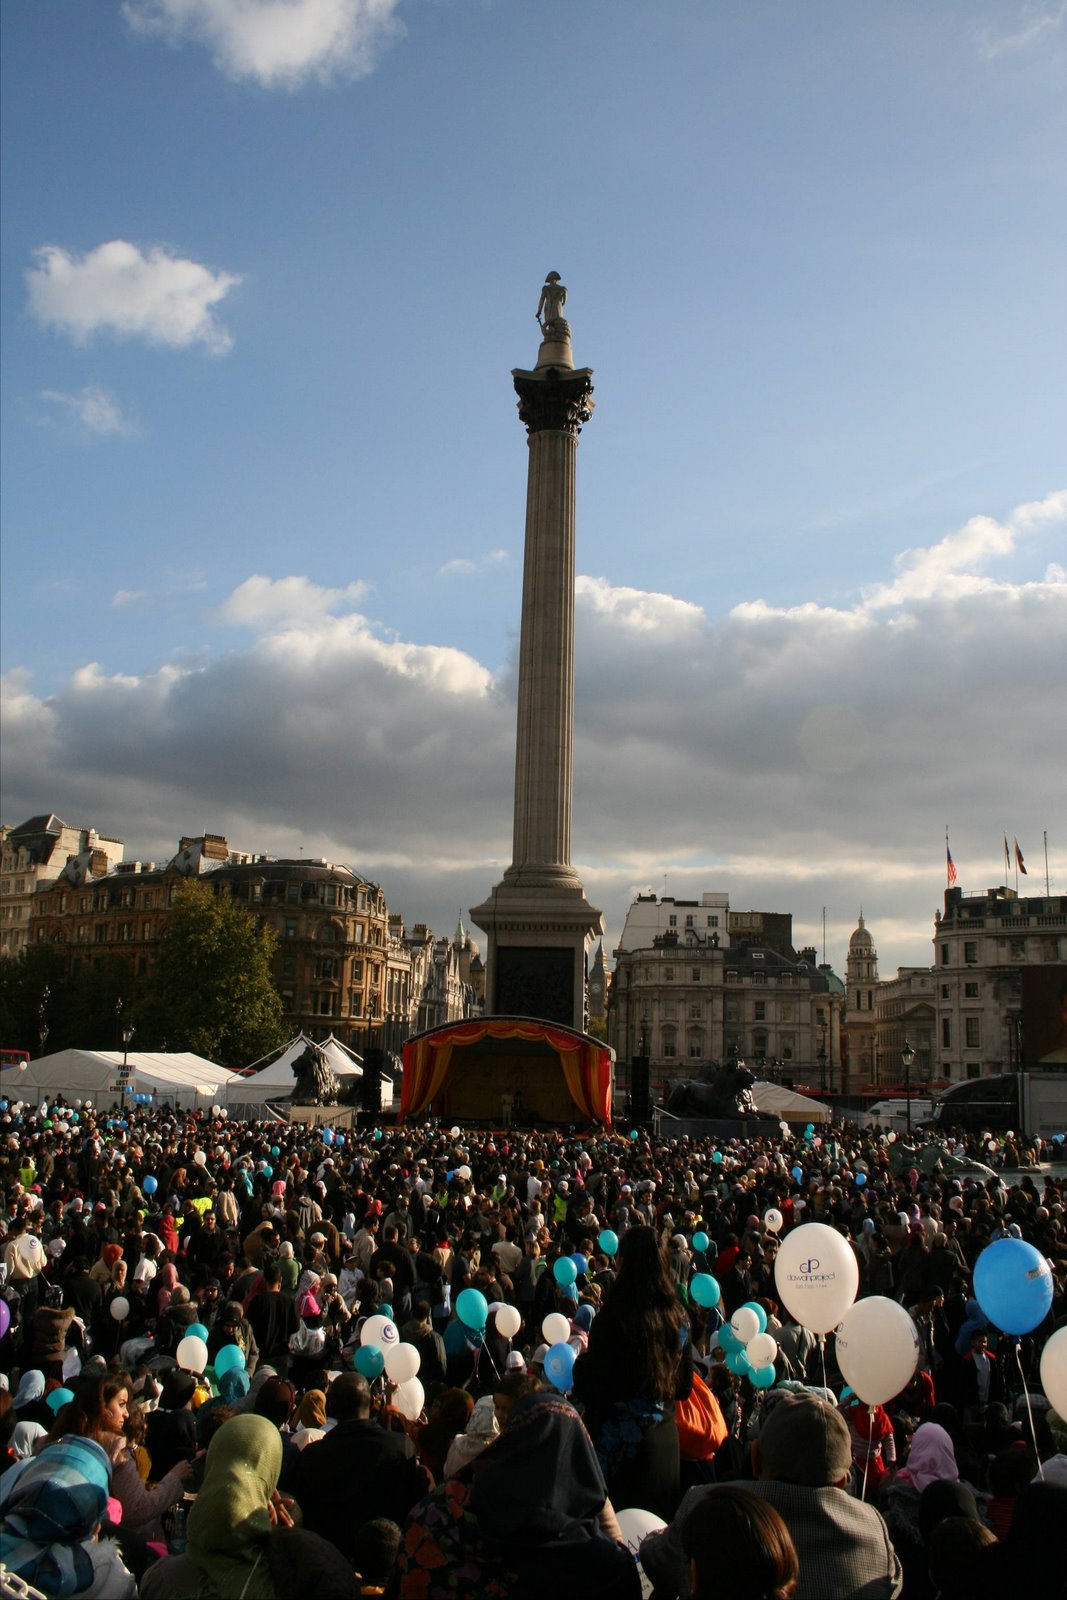 Eid celebration in Trafalgar Square » Spirit21